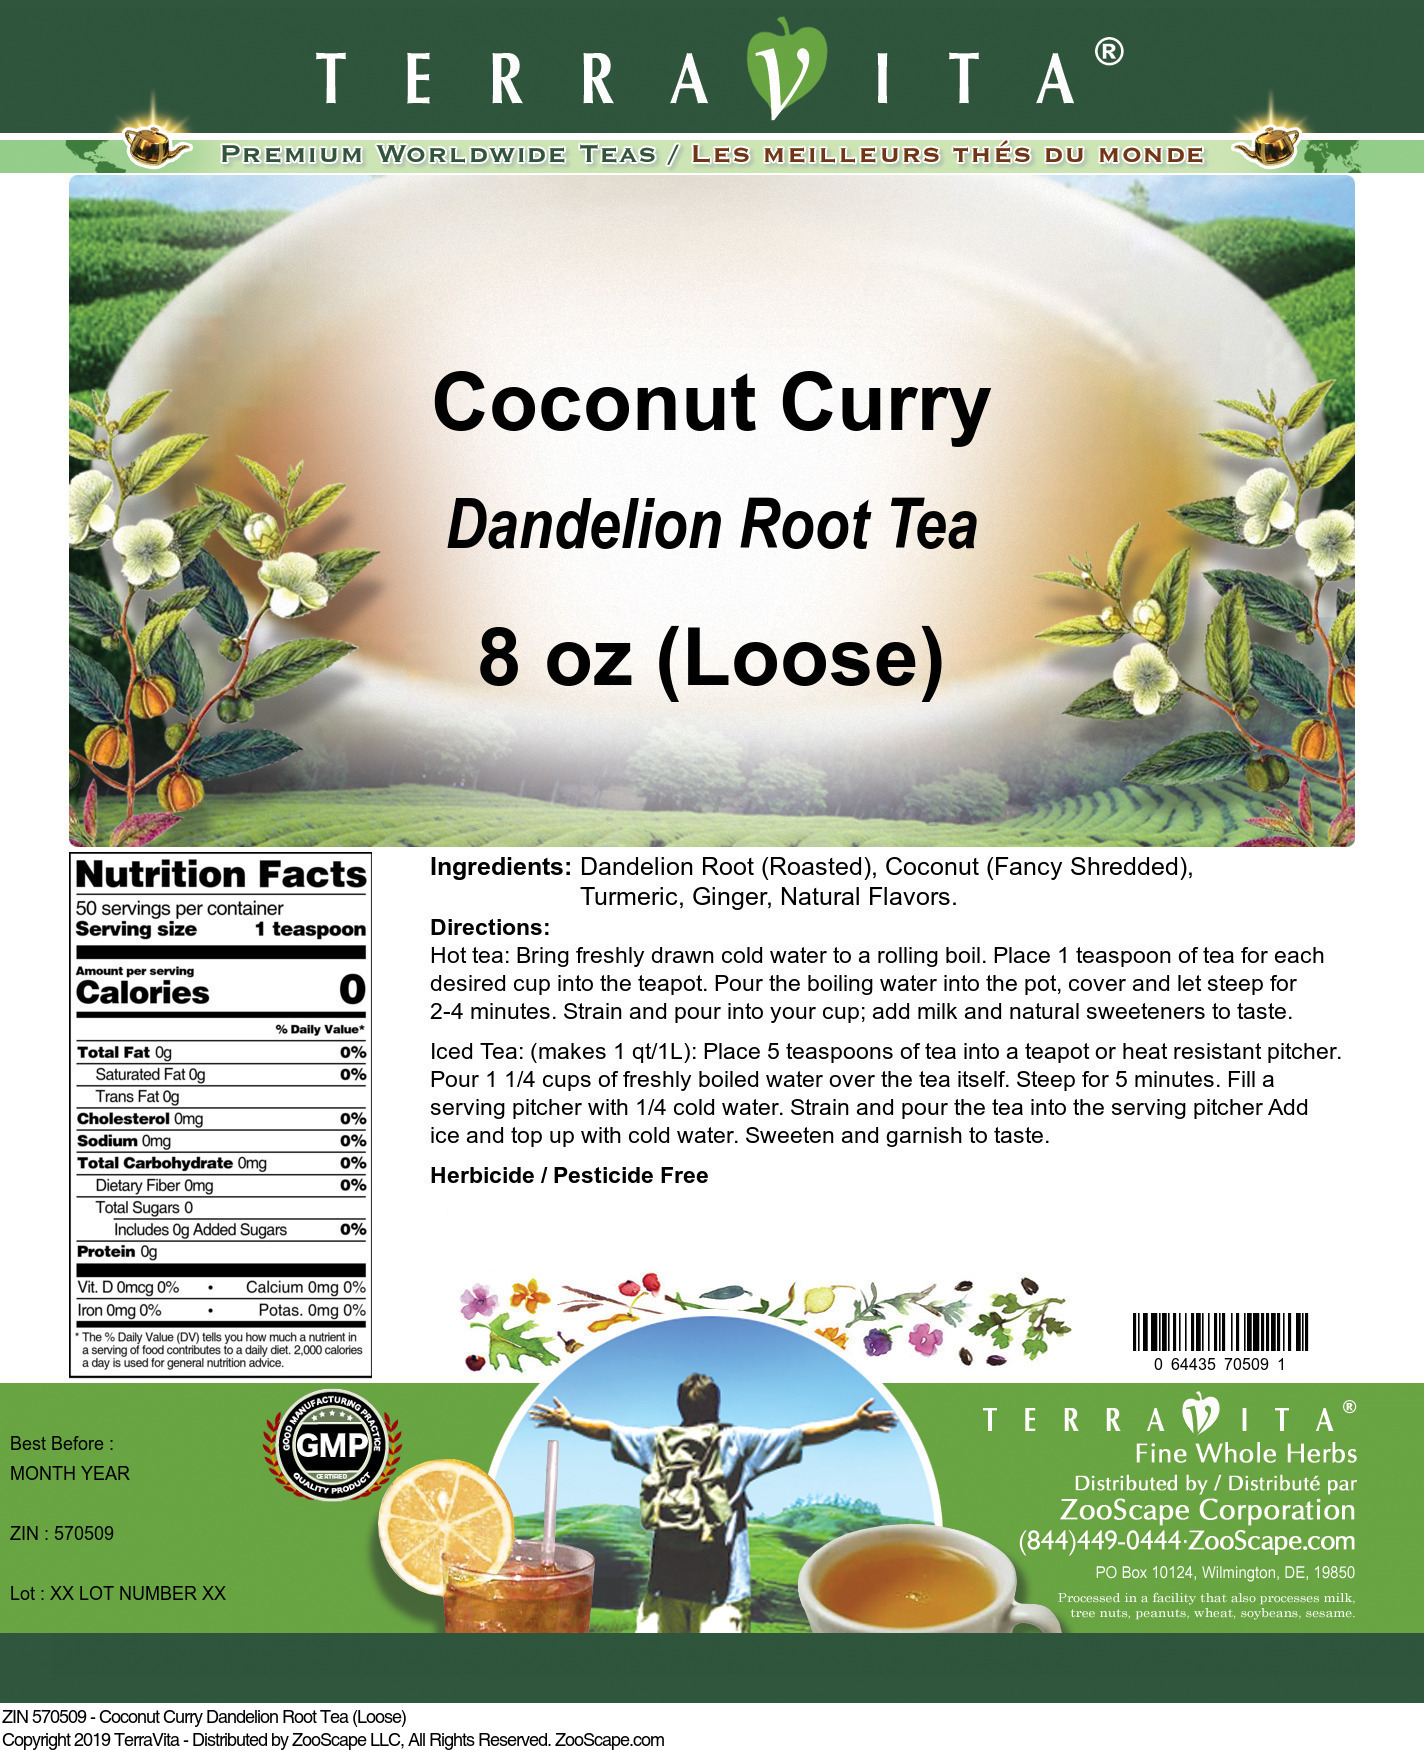 Coconut Curry Dandelion Root